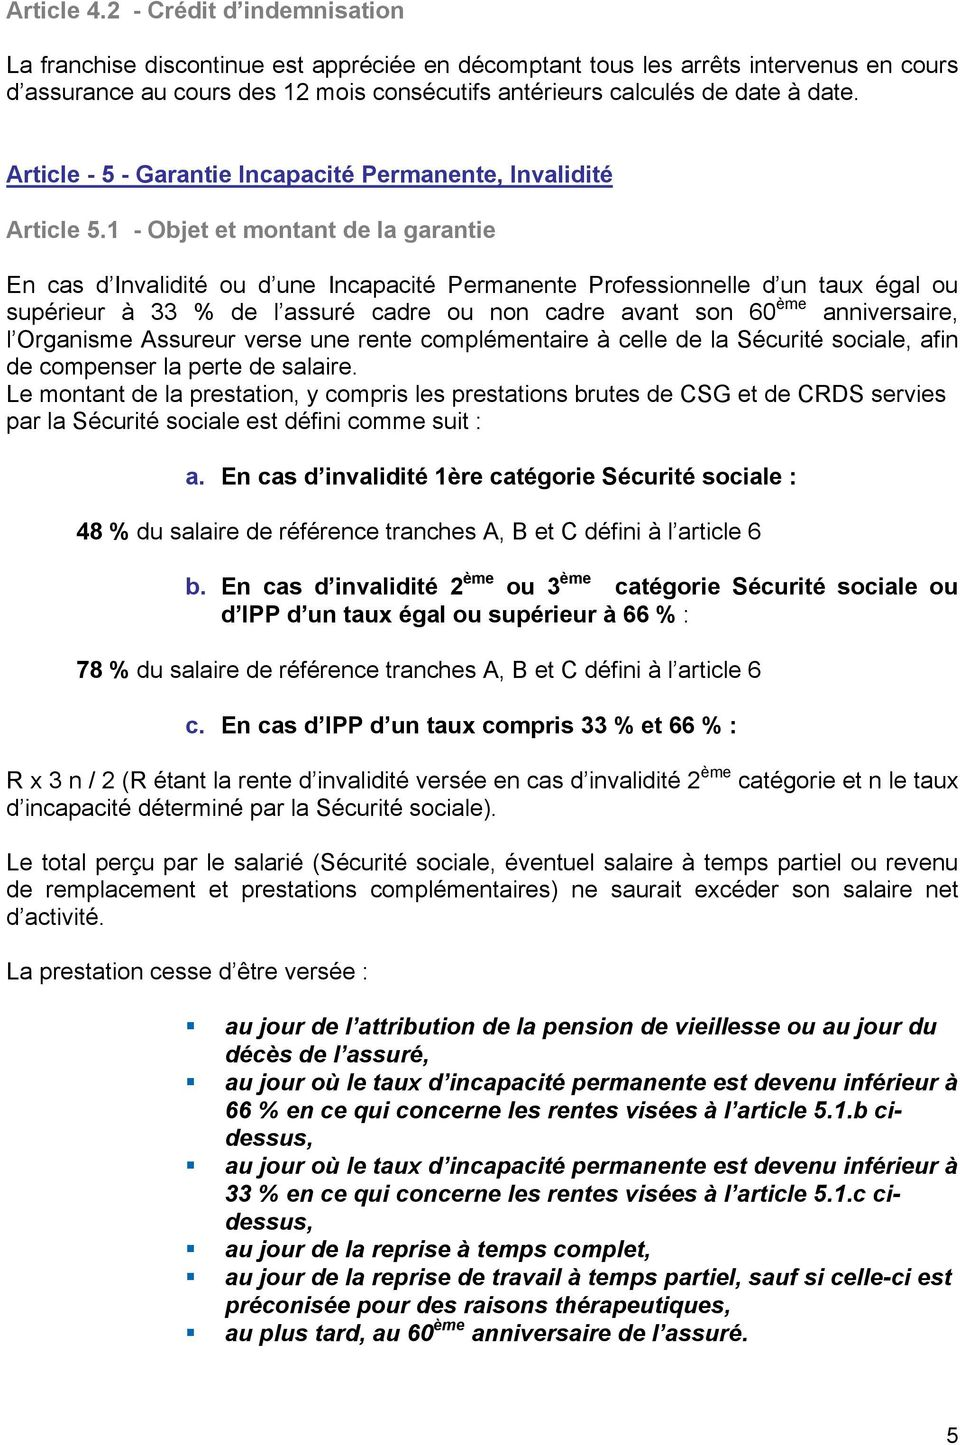 Article - 5 - Garantie Incapacité Permanente, Invalidité Article 5.